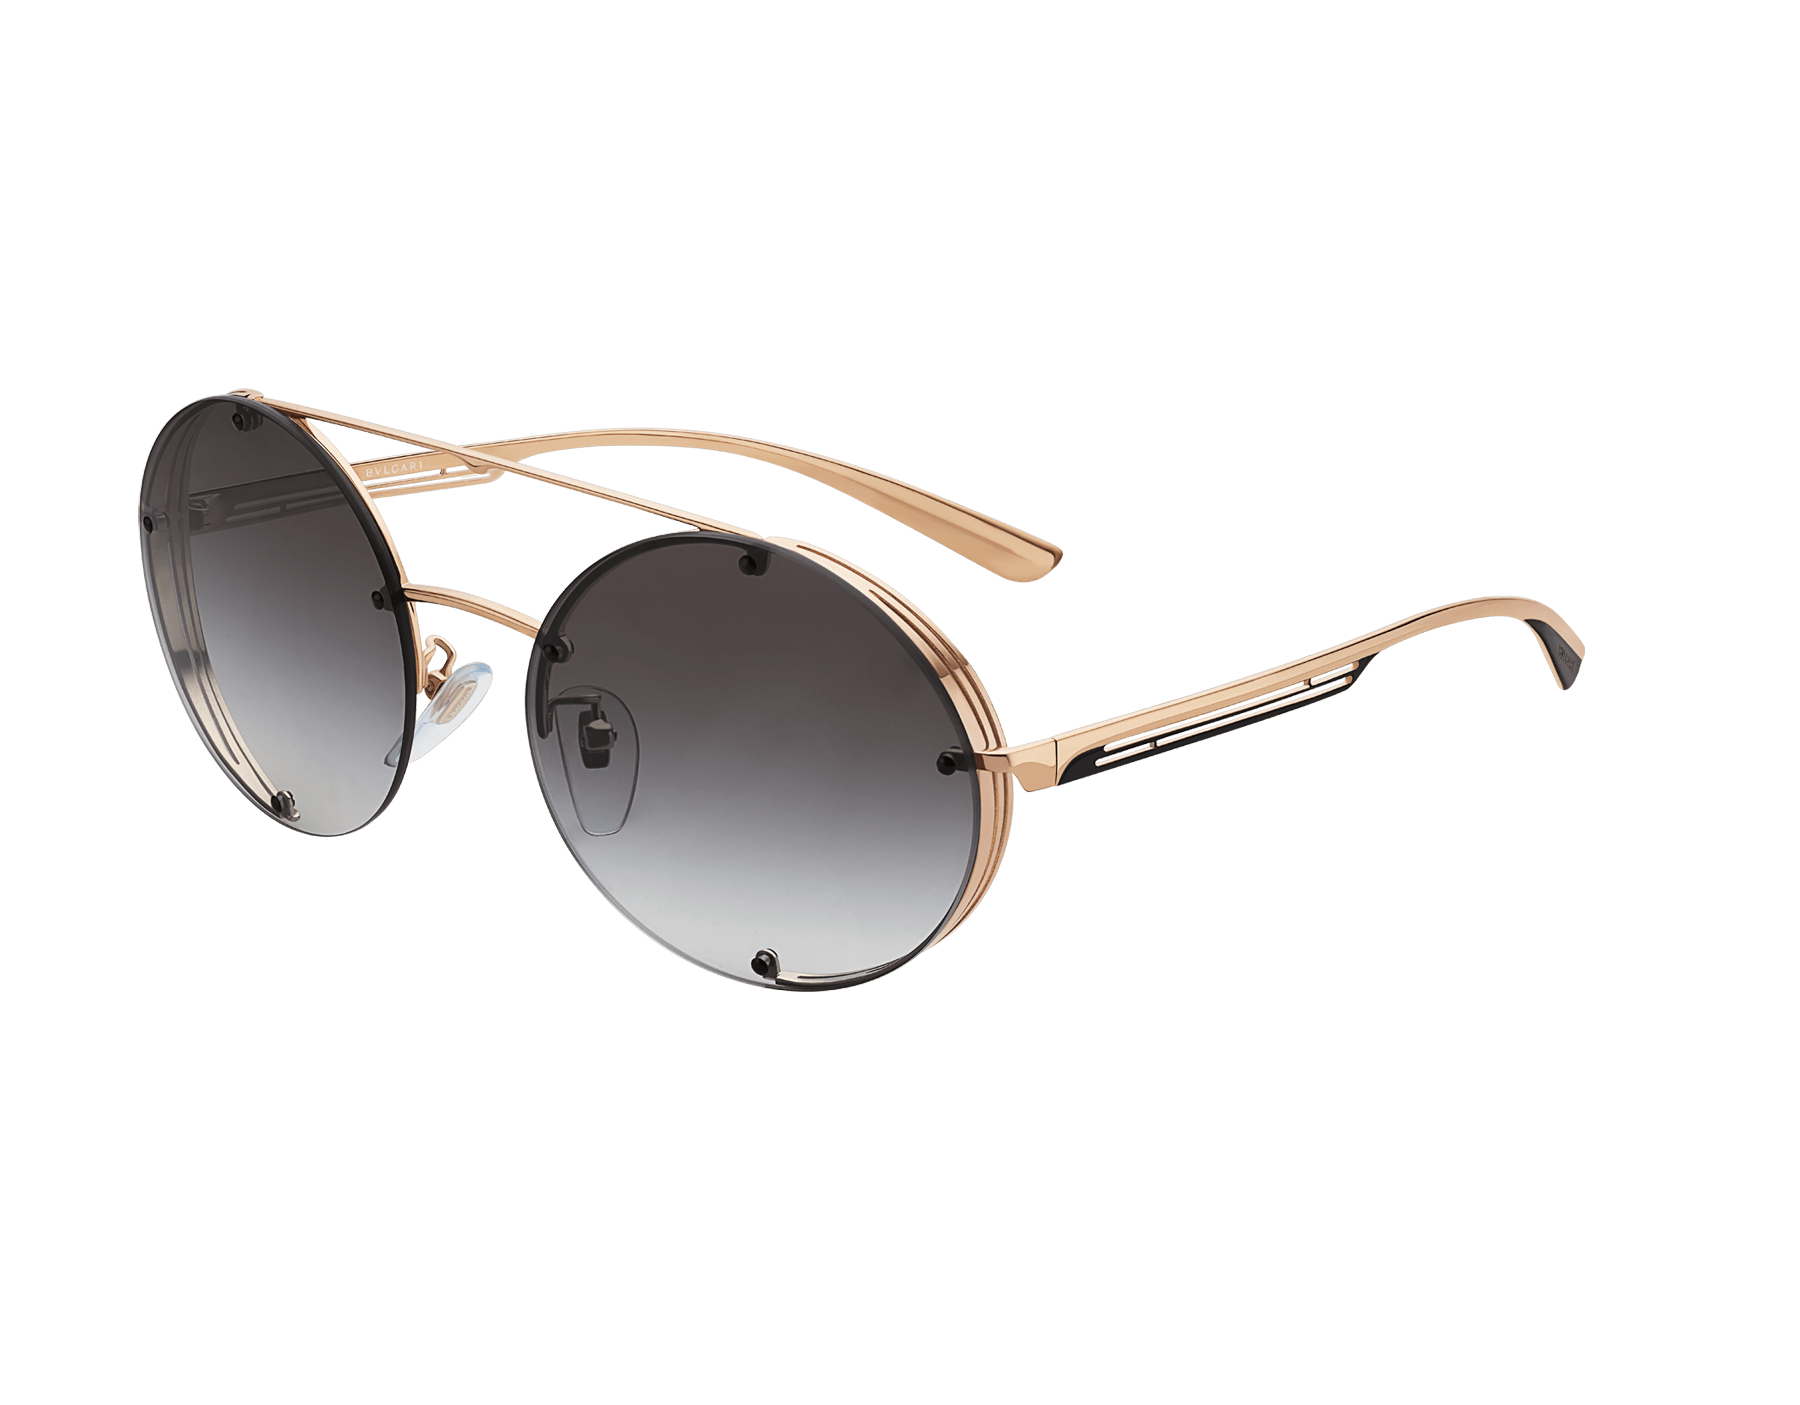 Bvlgari B.zero1 B.flyingstripe round metal aviator sunglasses. 903815 image 1